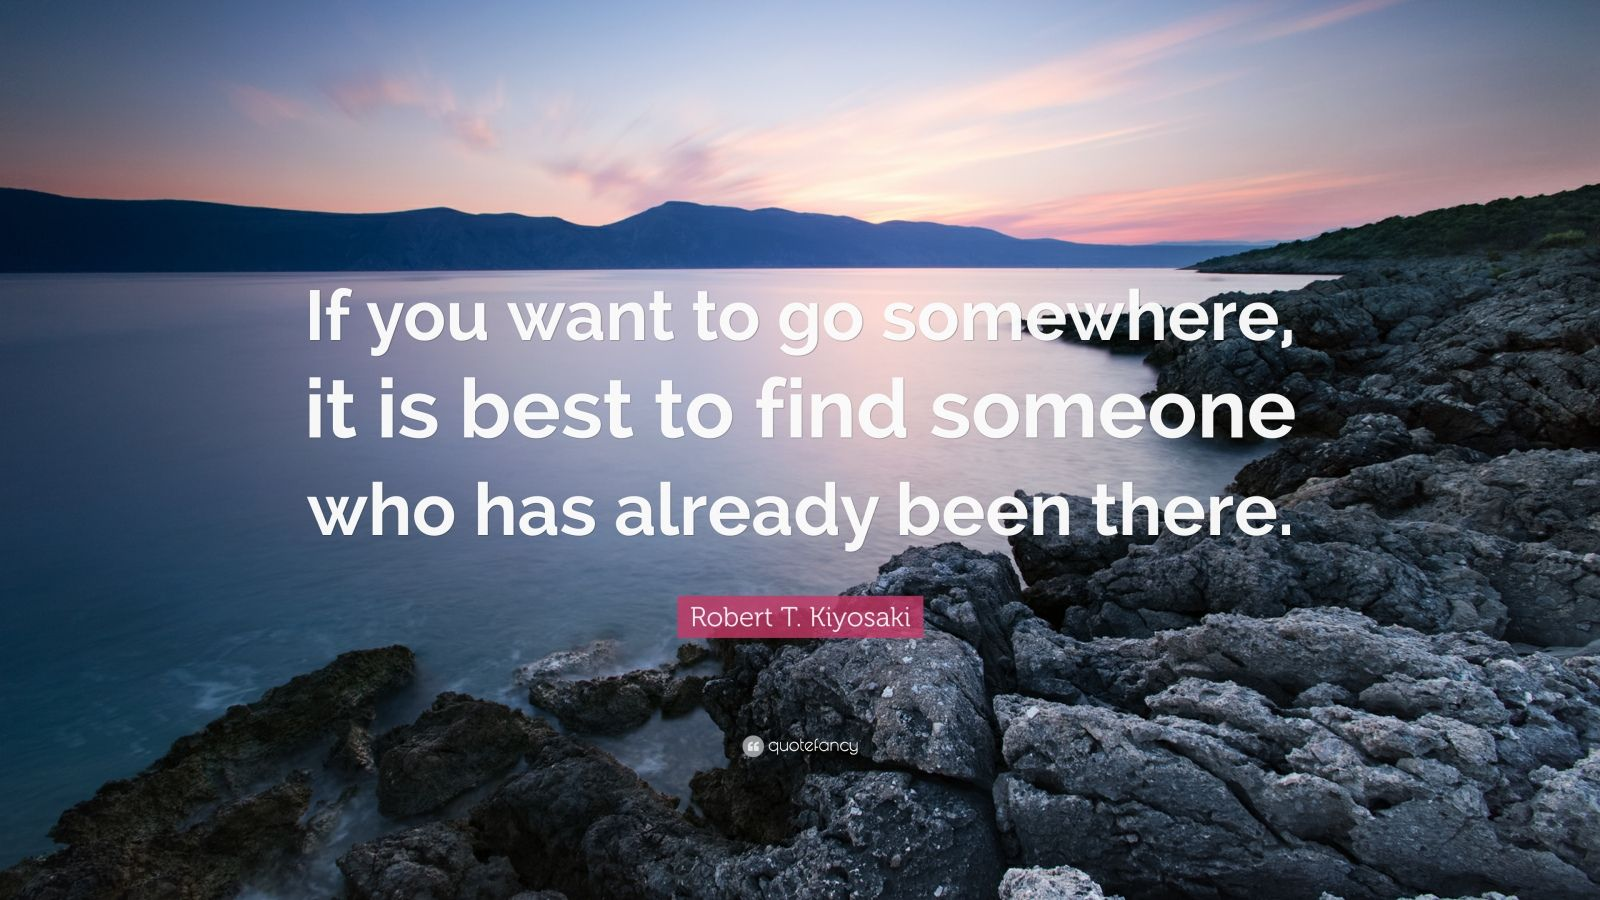 "Robert T. Kiyosaki Quote: ""If you want to go somewhere, it is best to find someone who has already been there."""